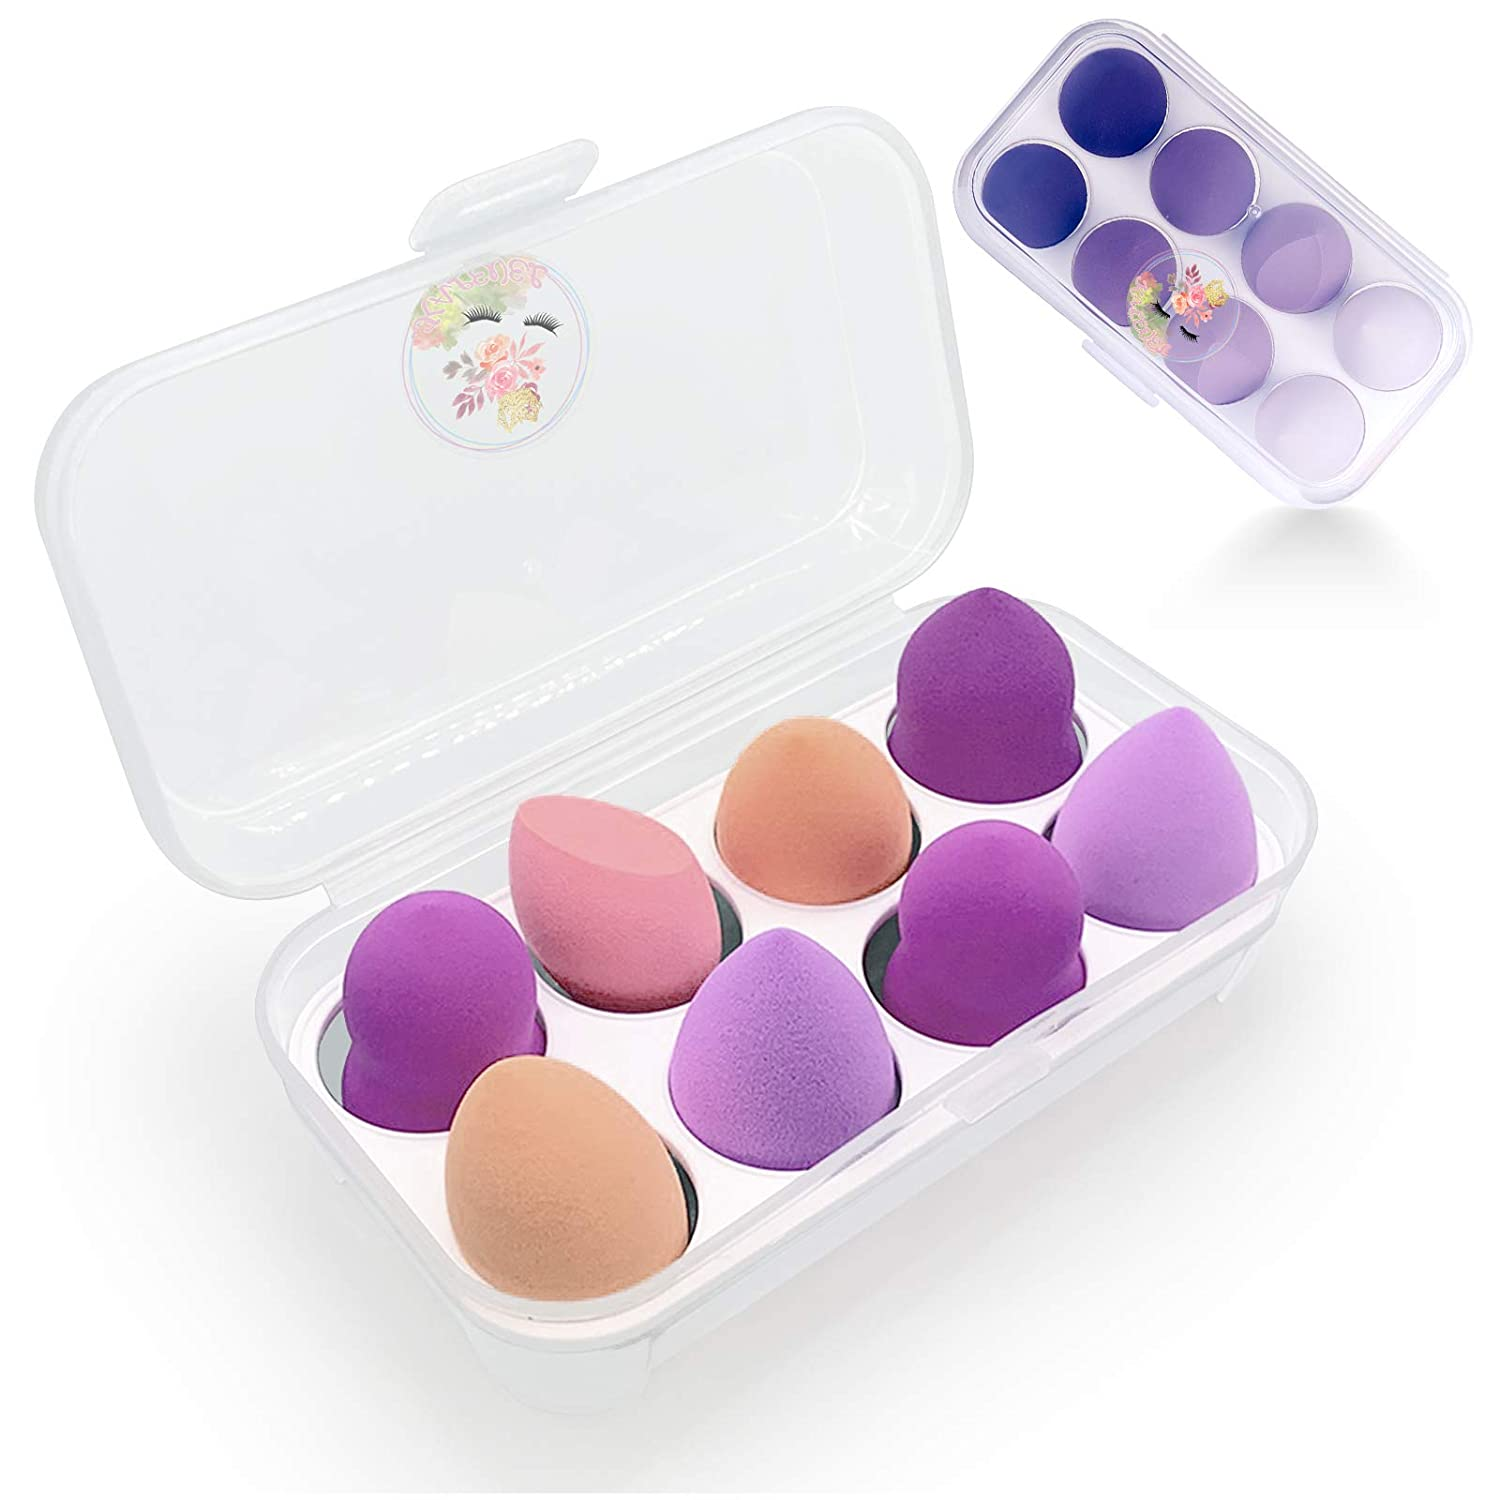 Kalevel Makeup Sponge Holder Case Container Cosmetic Beauty Sponge Storage Box Dustproof and Easy to Clean 8 Holes